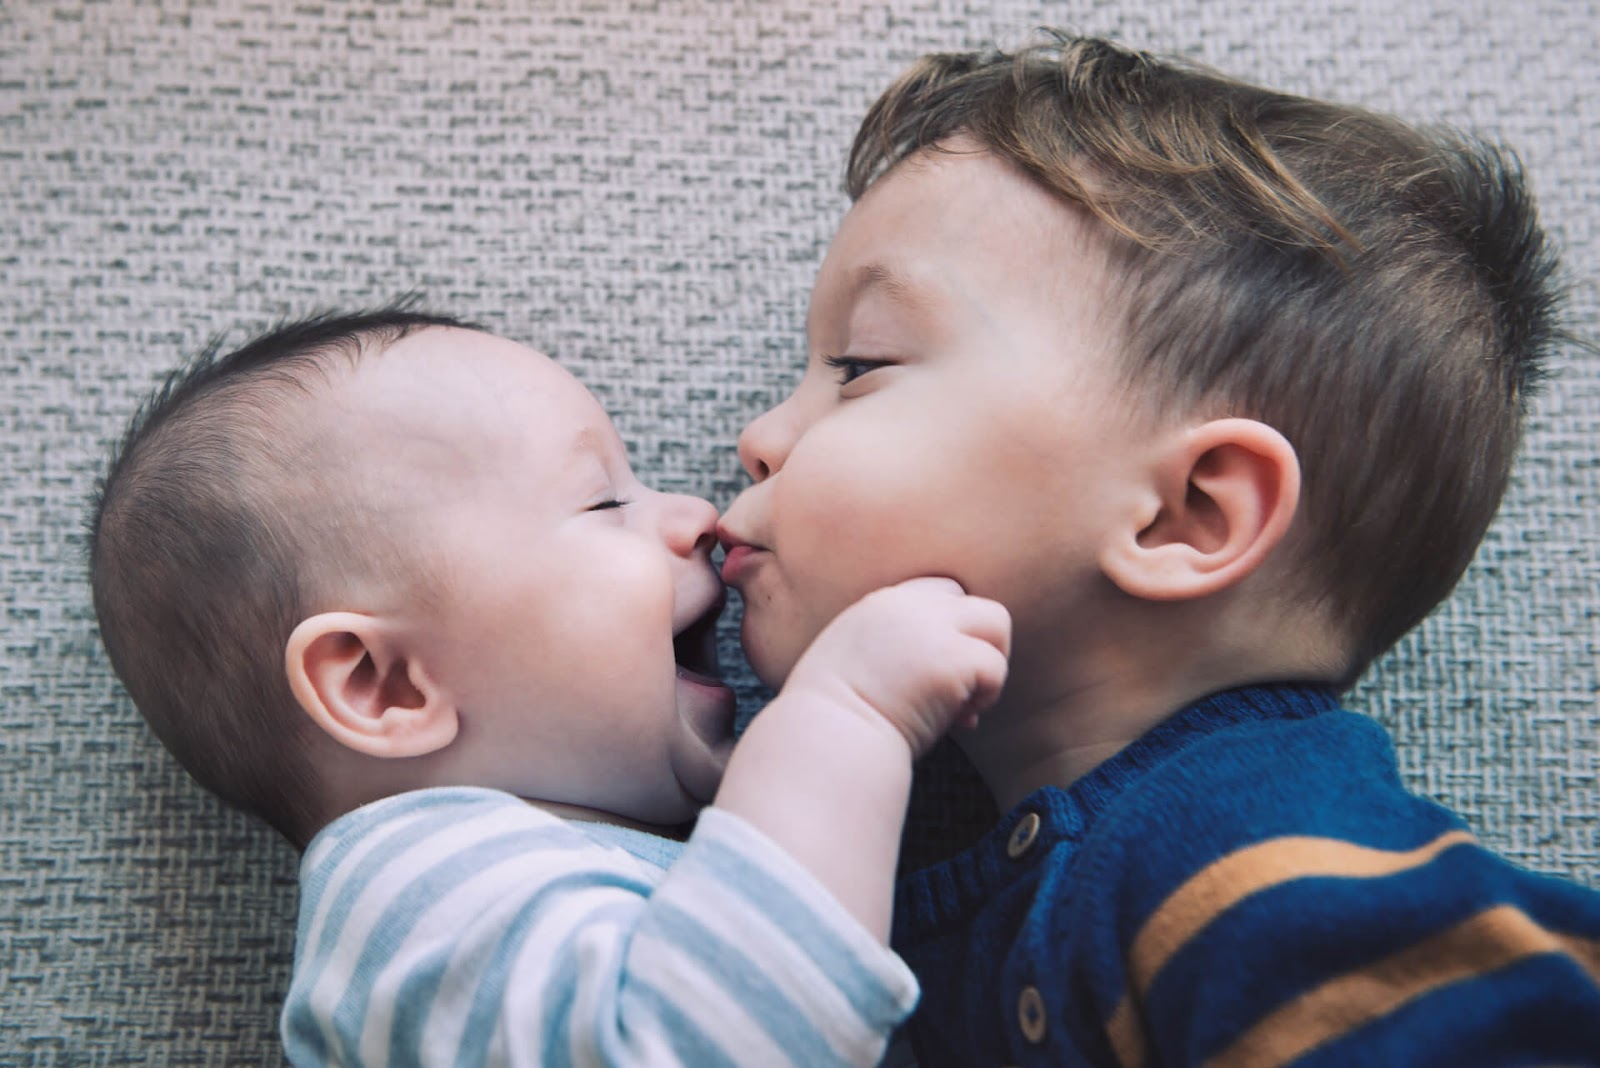 Young boy kissing his baby brother